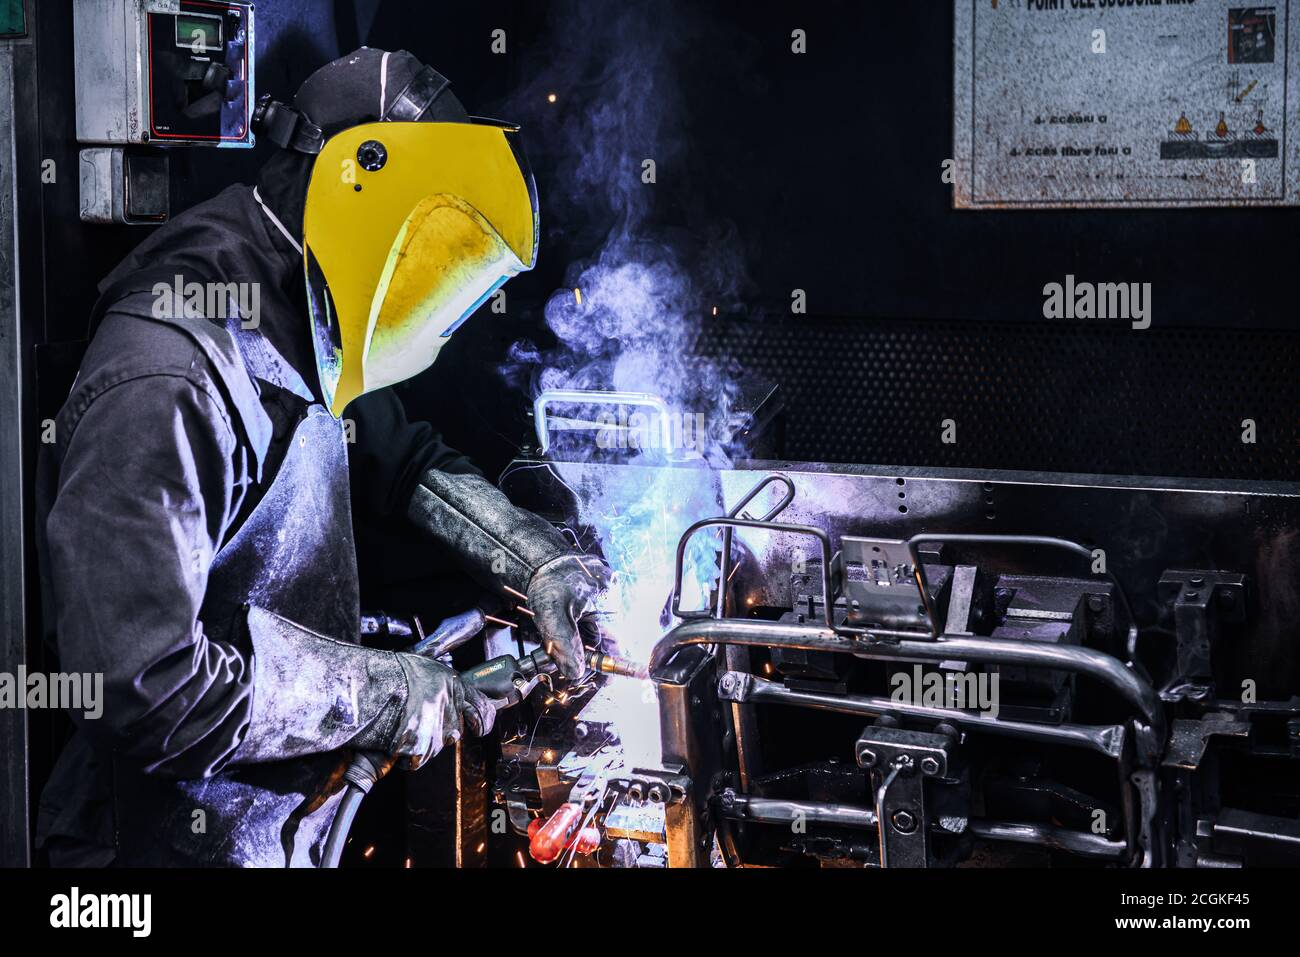 Man Welding on Assembly Line in Automotive Factory . Stock Photo